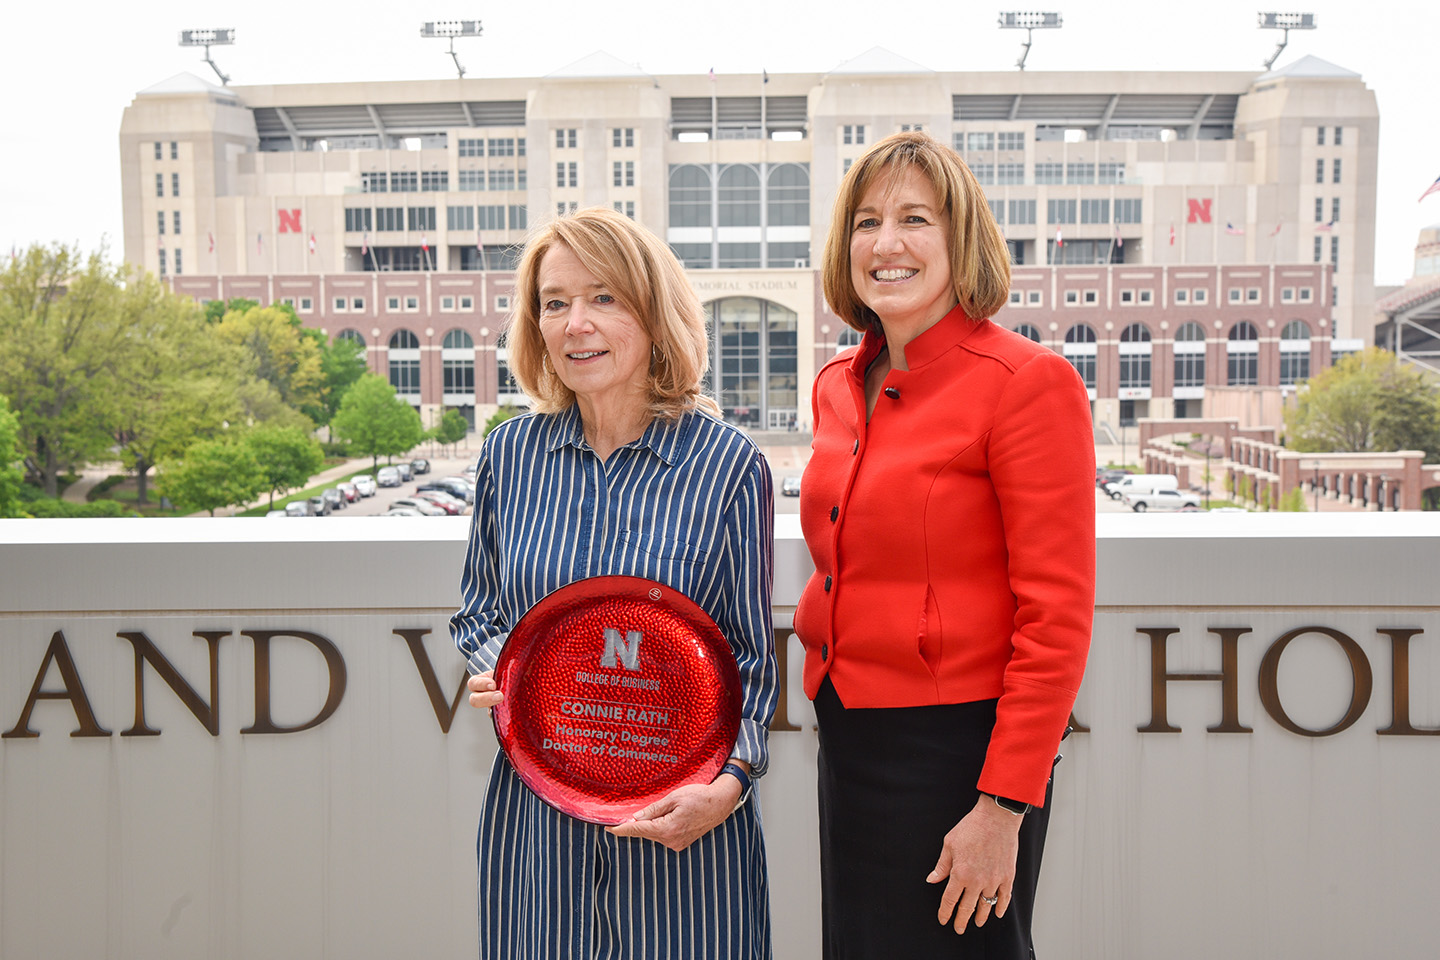 Connie Rath Awarded Honorary Doctorate